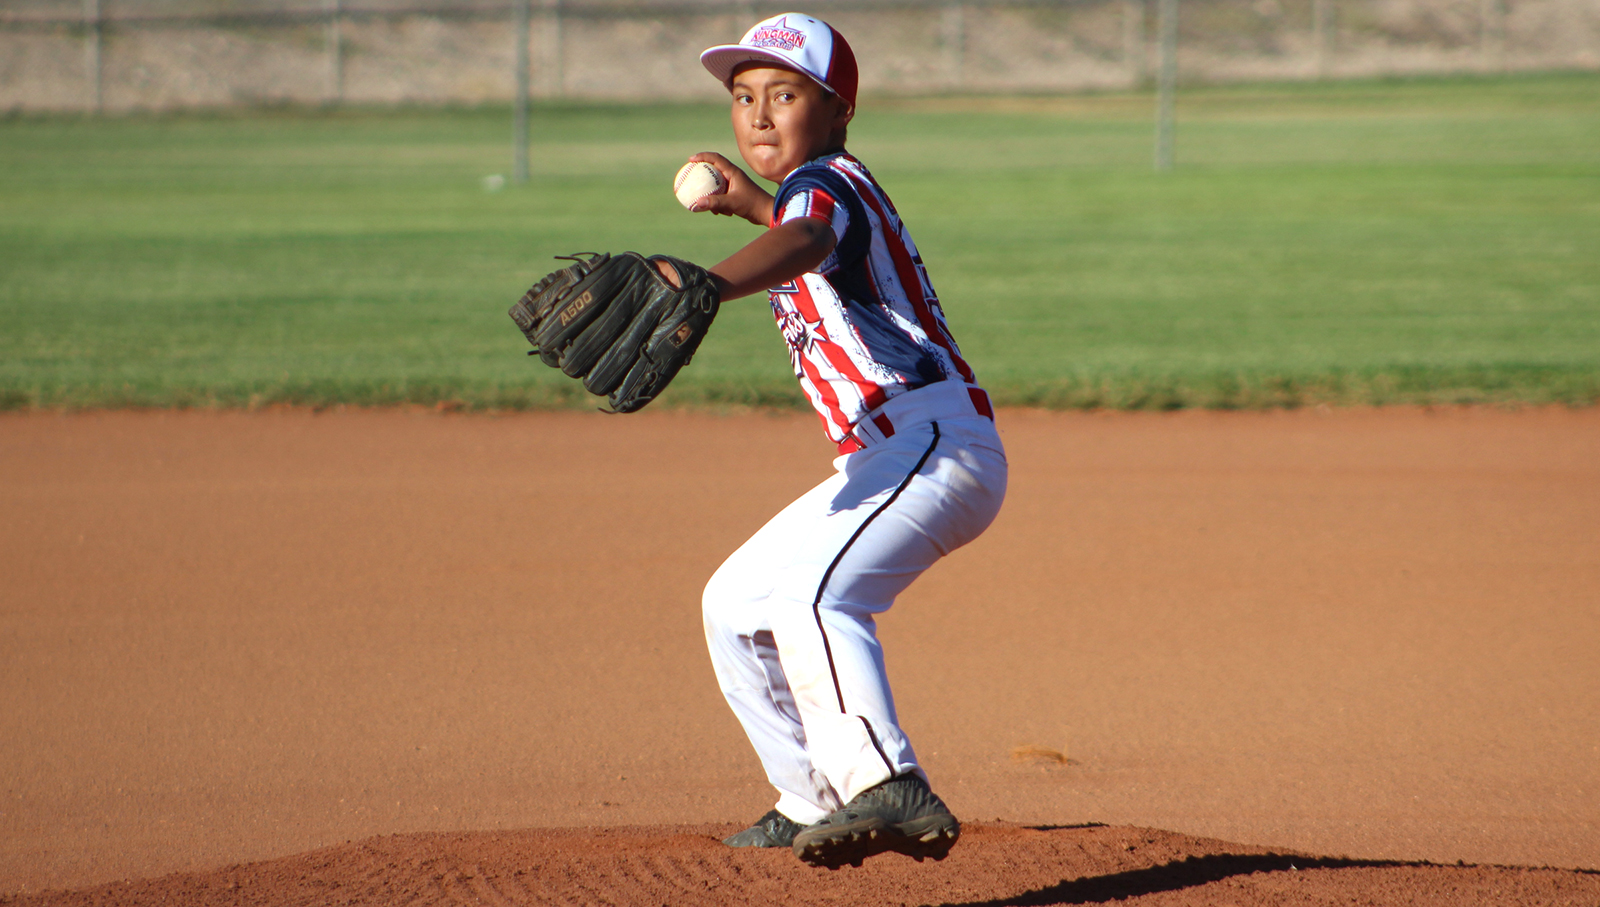 Little League: Kingman North 8-10 All Stars fall short against Lake Havasu City